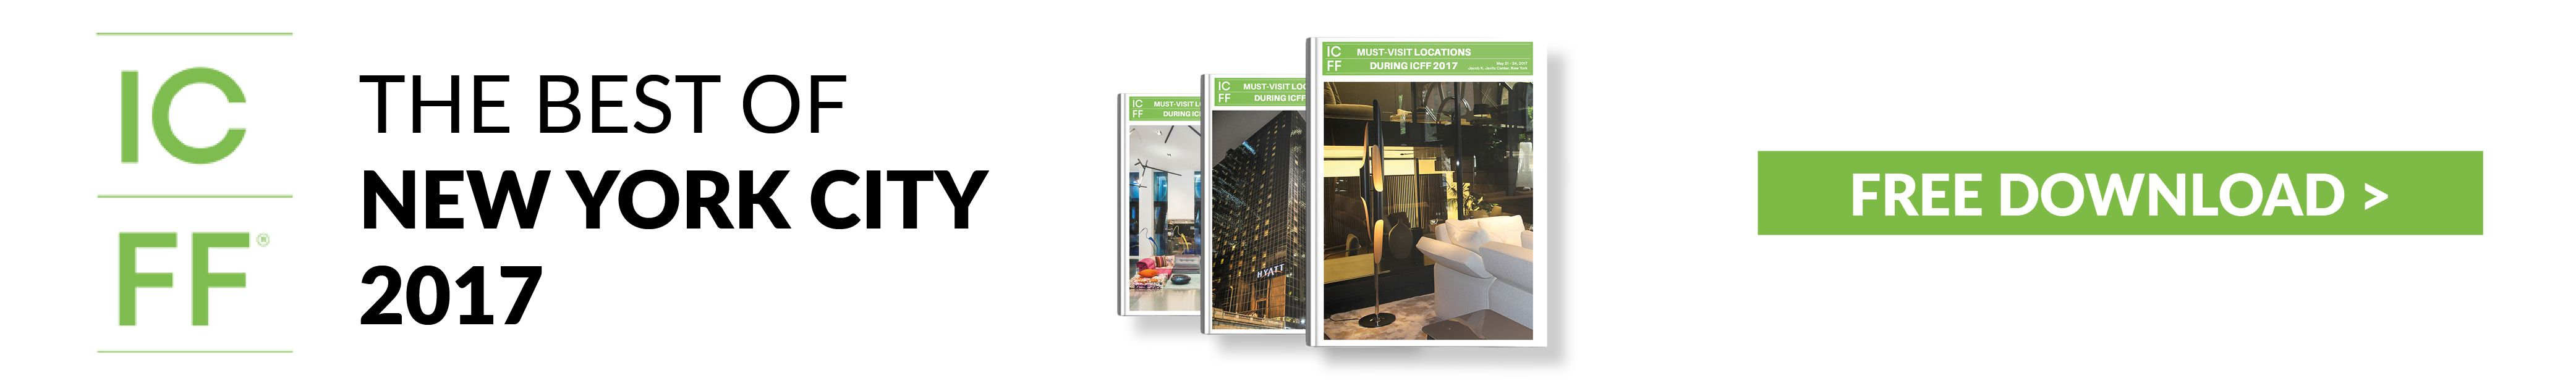 icff 2017 ICFF 2017: 5 Places to Visit in New York City ICFF1 banner home